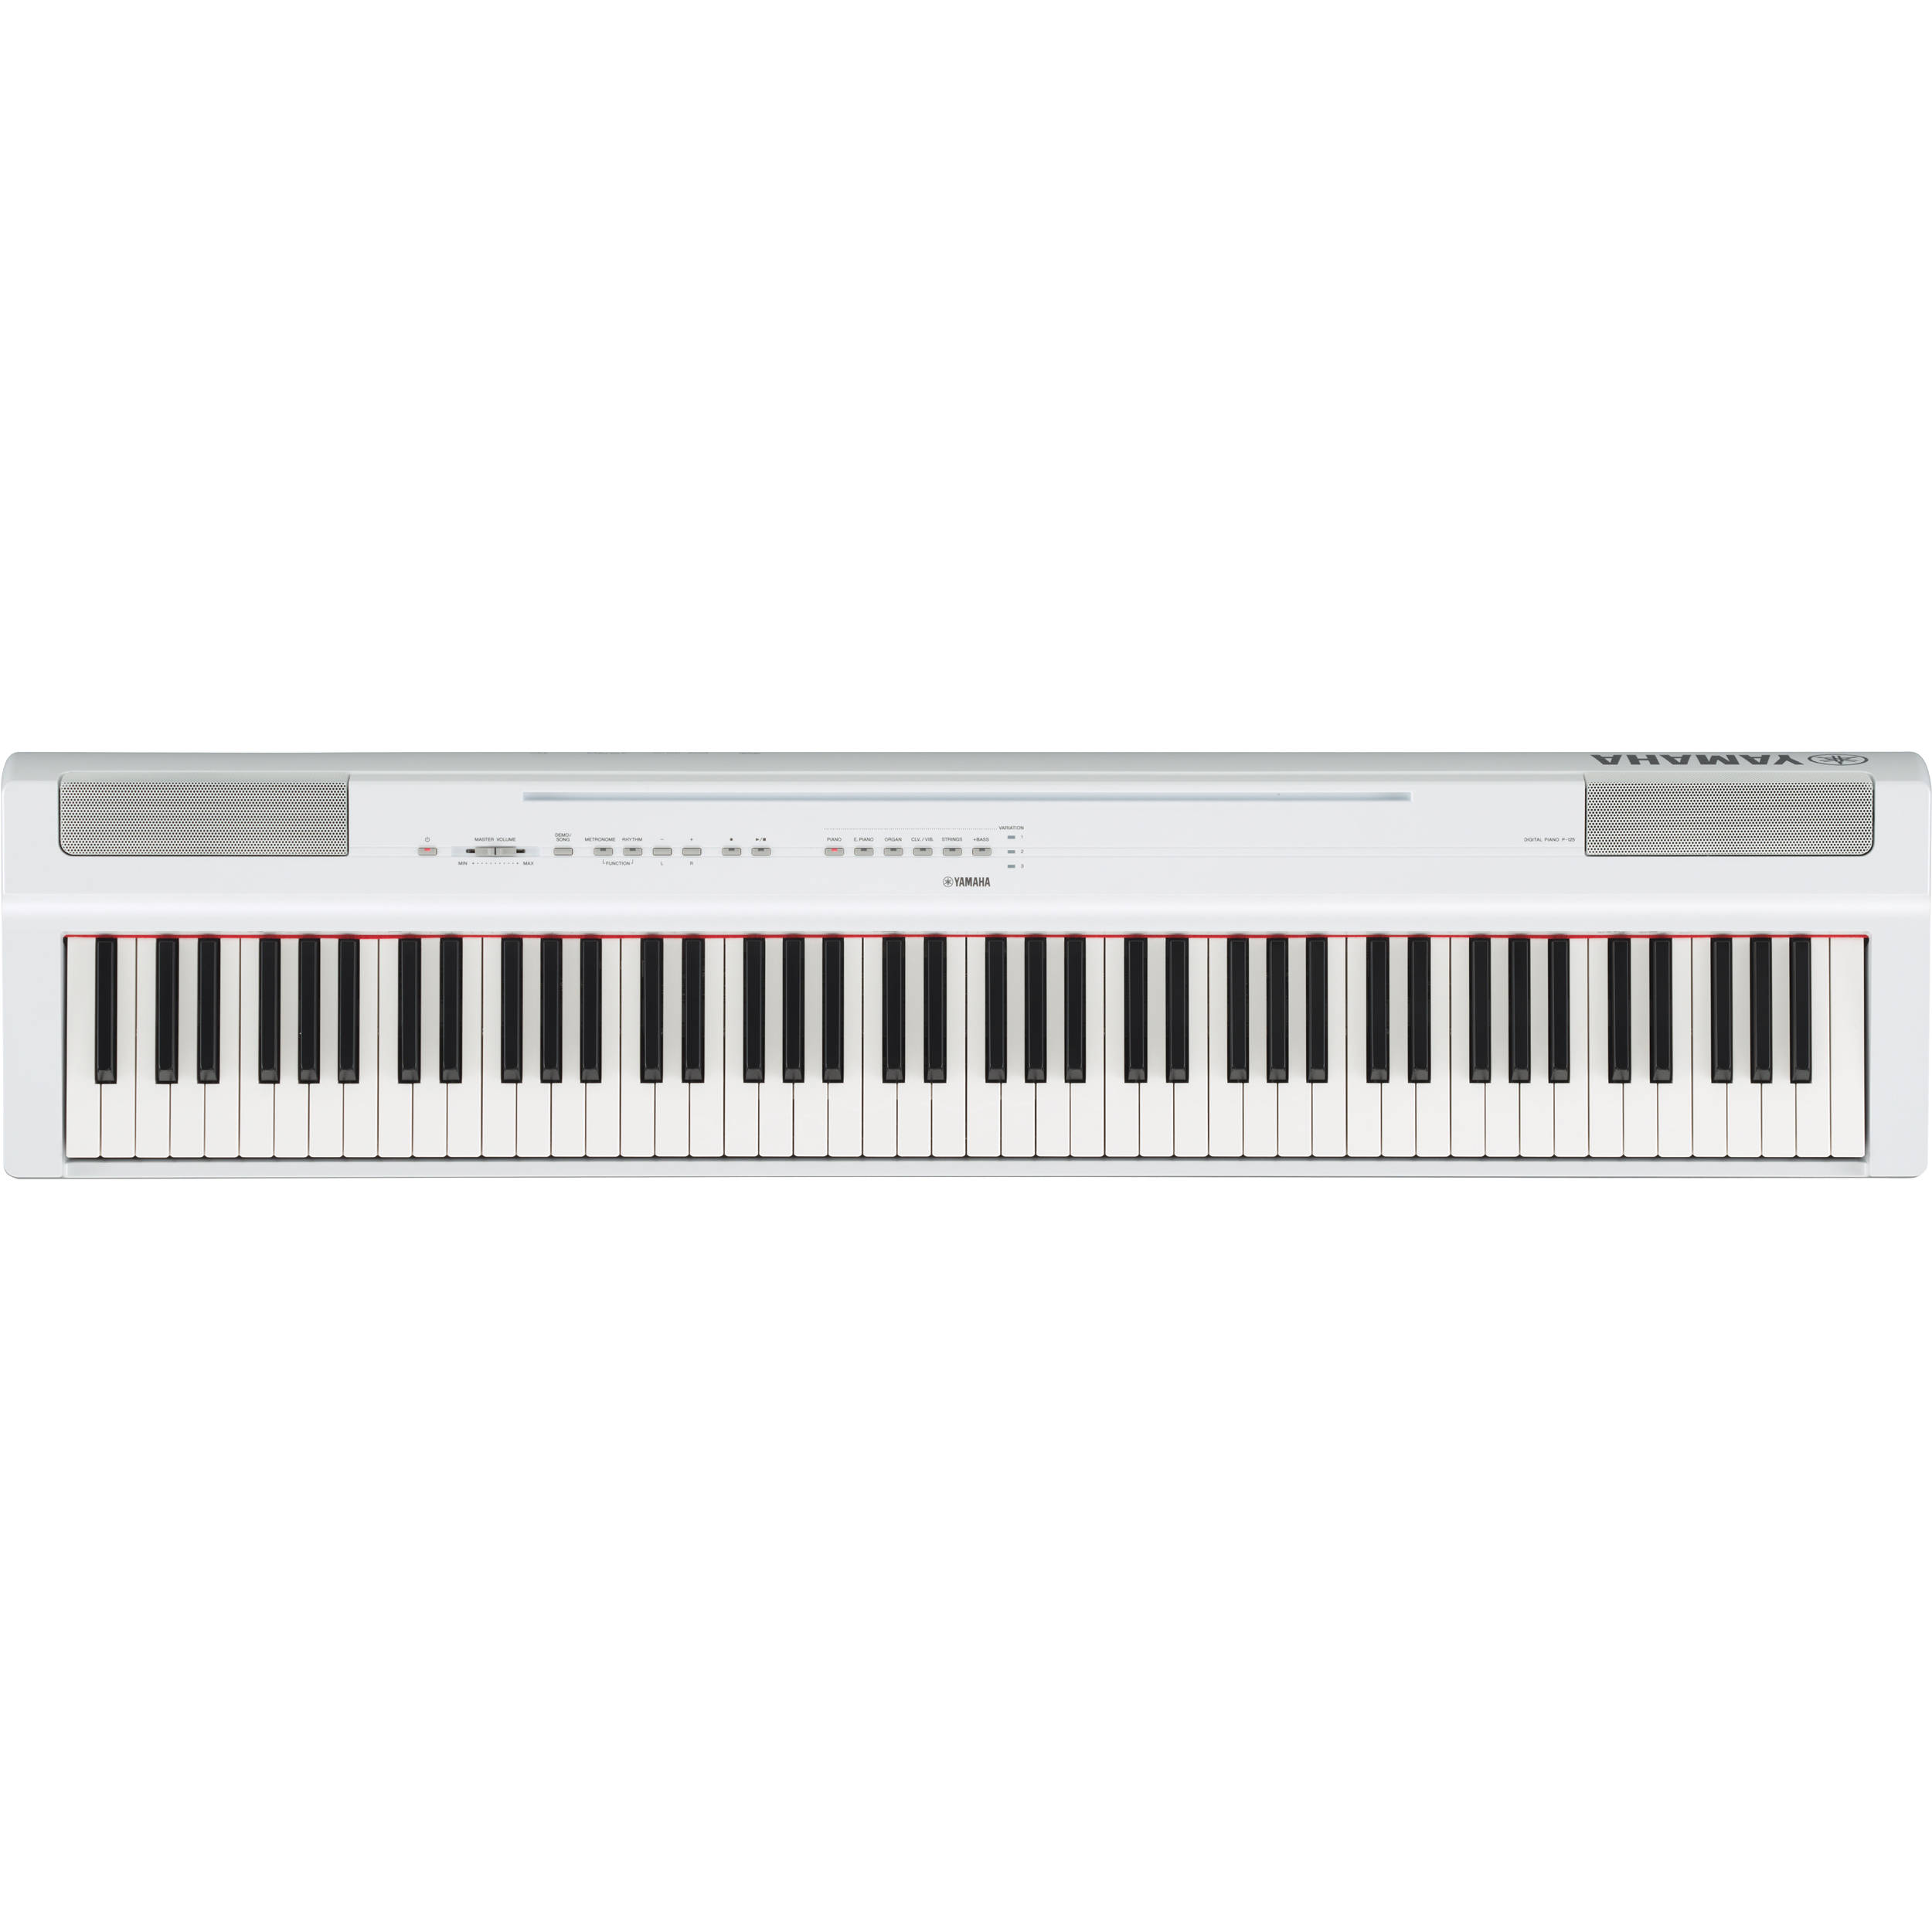 Yamaha P-125 88-Note Digital Piano with Weighted GHS Action (White)